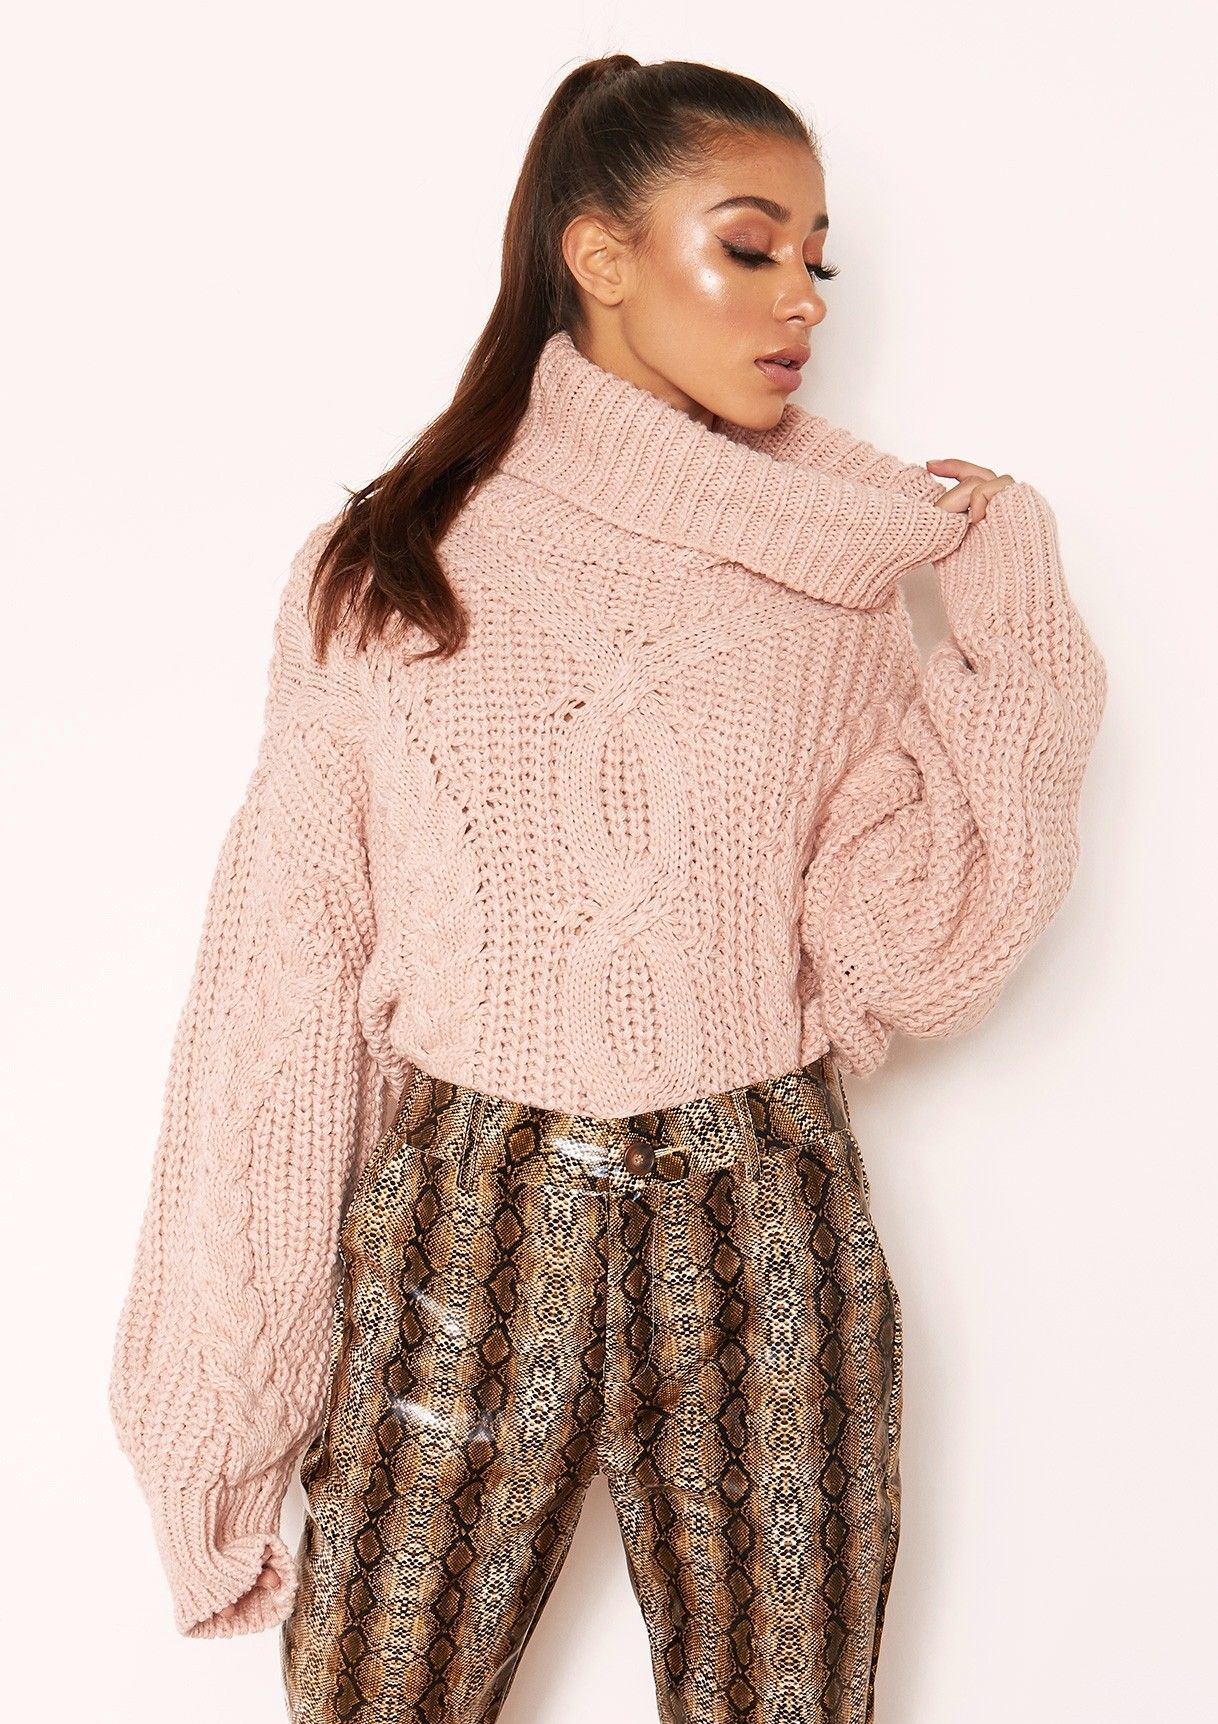 Missyempire - Hana Pink Cable Knit Roll Neck Jumper  6a65d0ae0